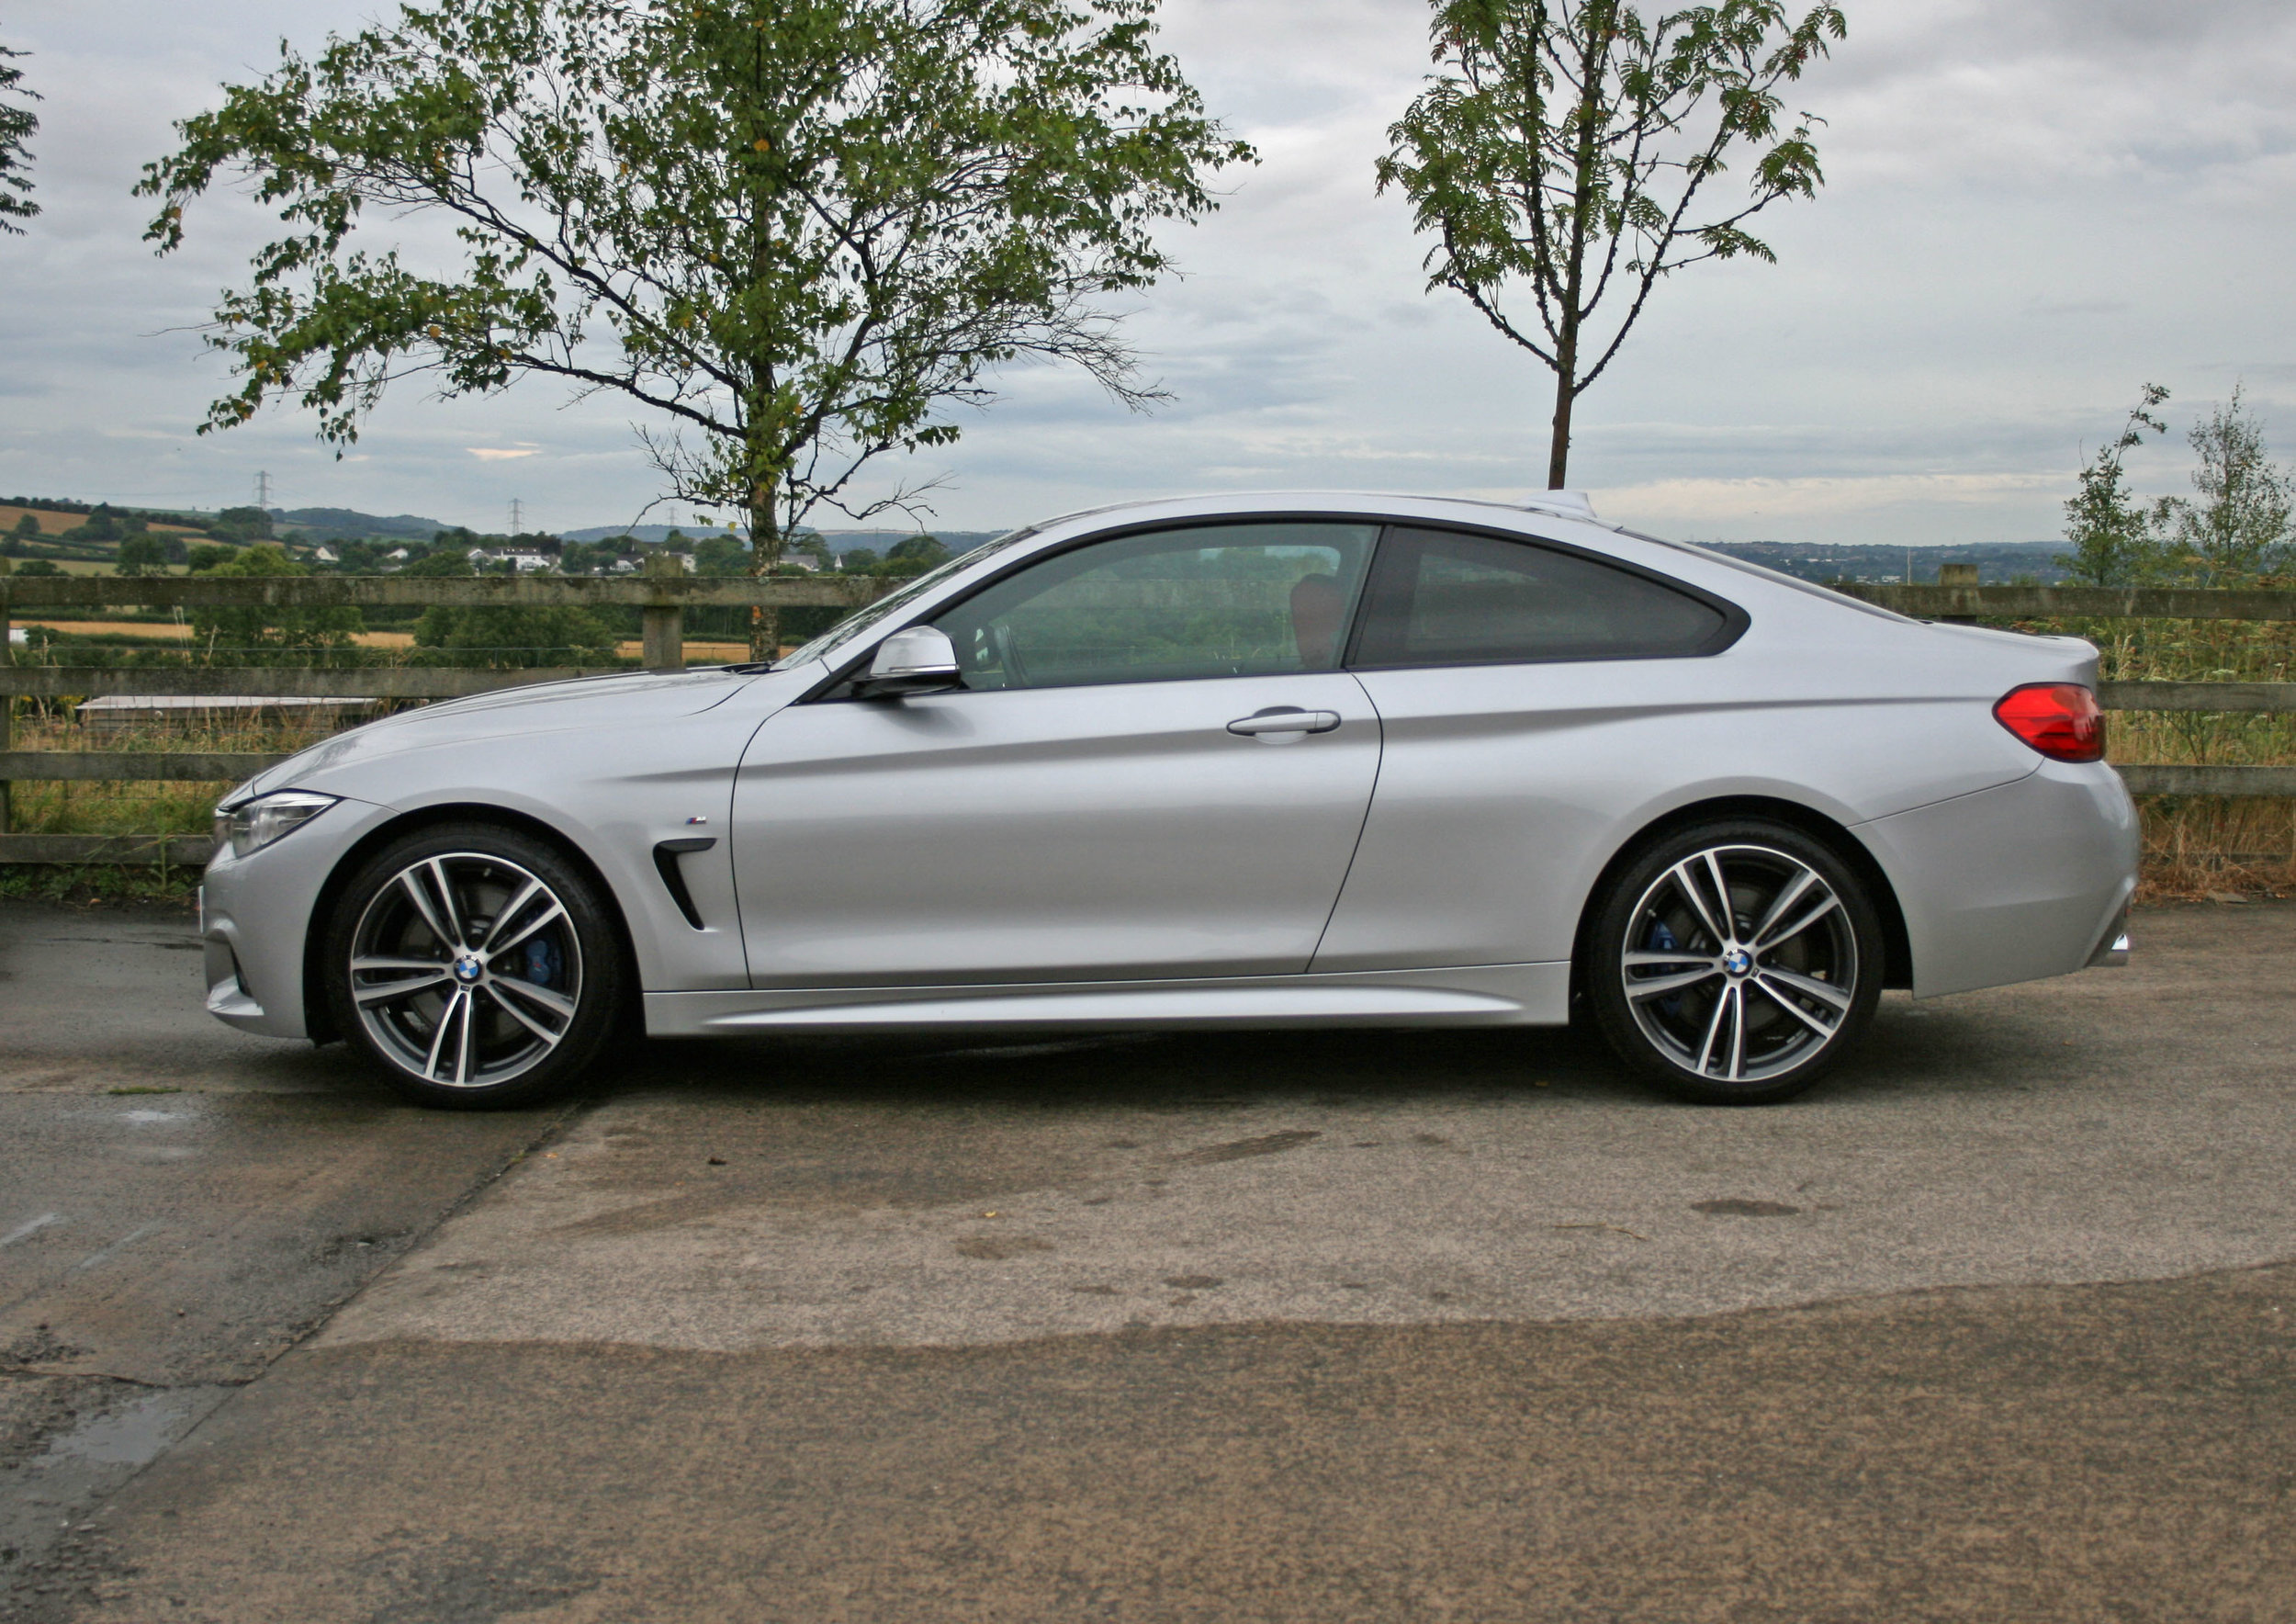 Bmw 435i Unique 2014 Bmw 435i Msport — W D Wins